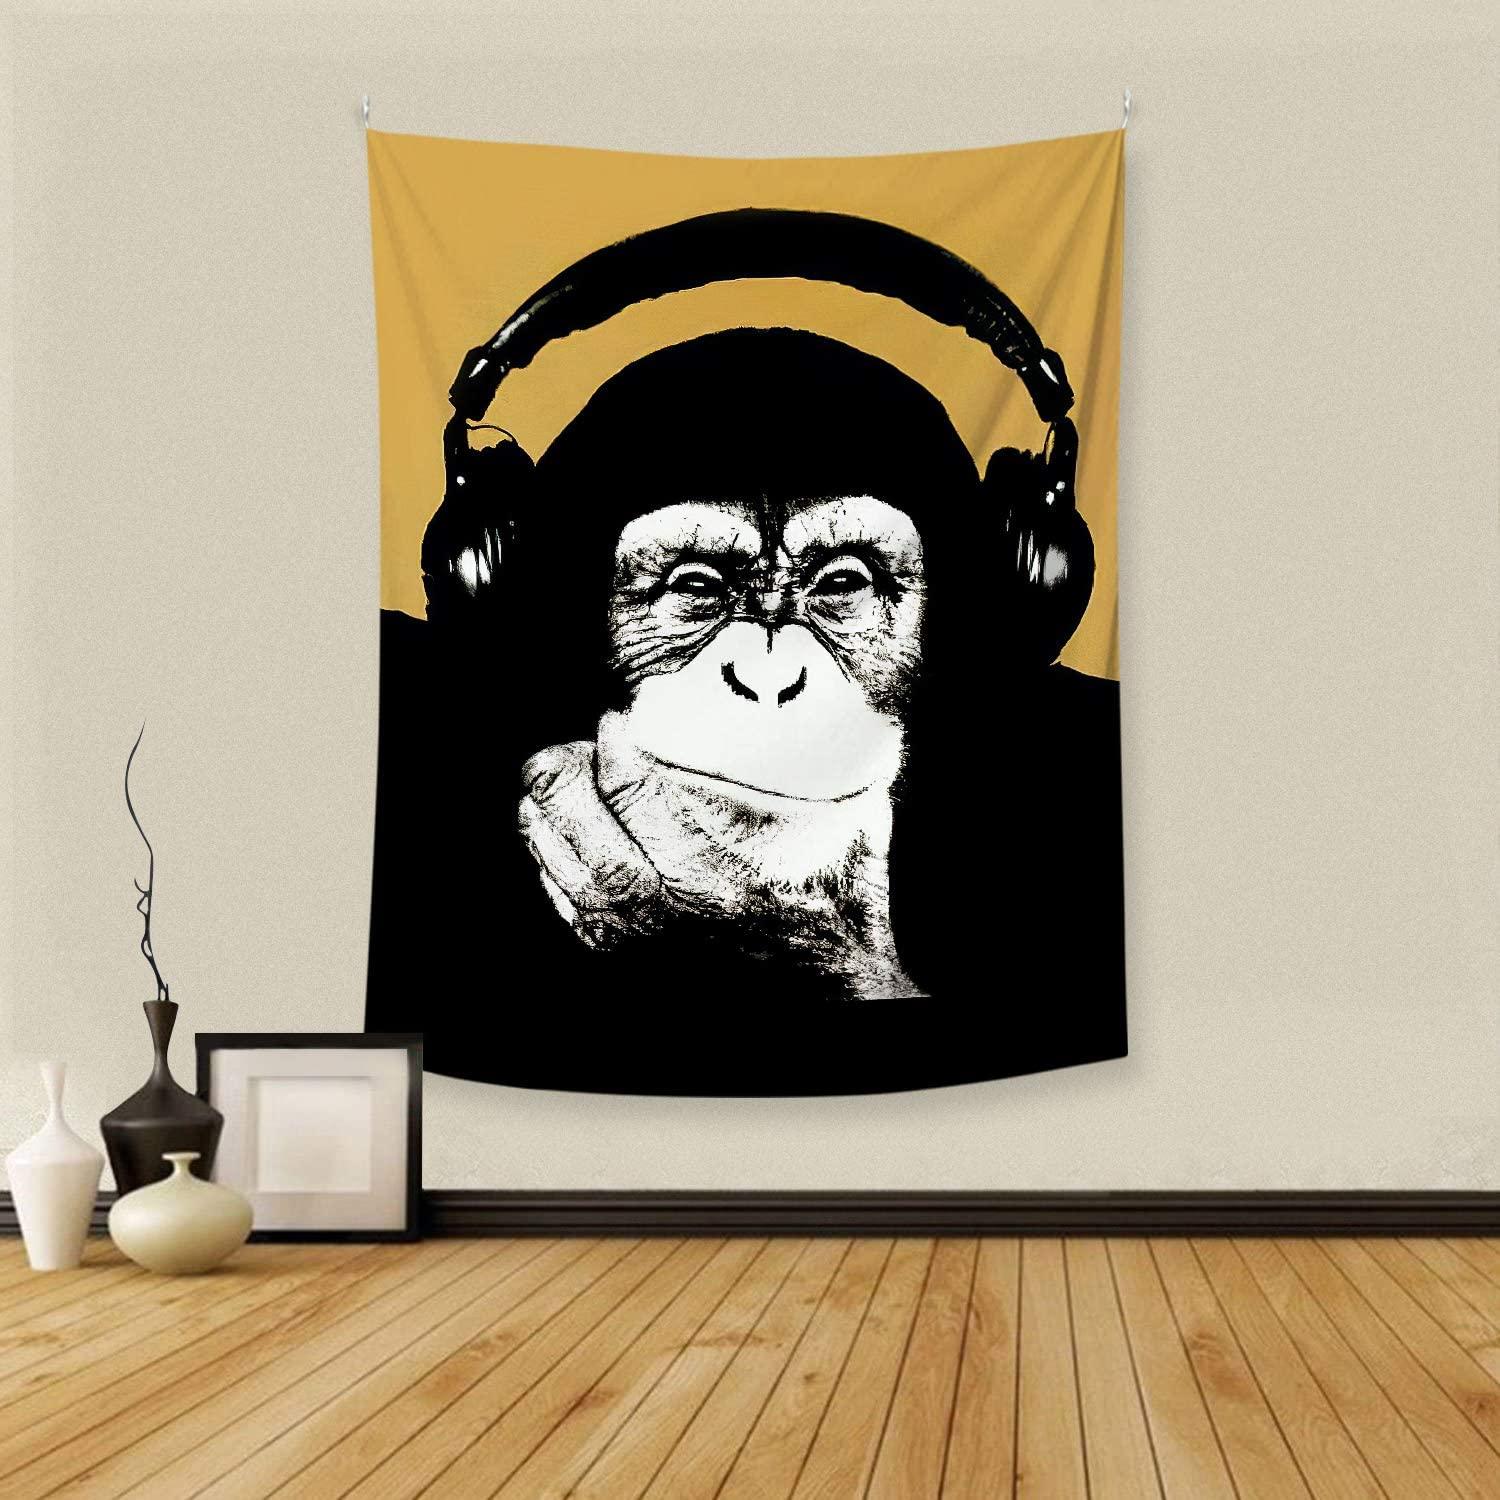 BOOPBEEP Men Wall Tapestry for Bedroom Decor, Music Banksy Headphone Monkey Theme Yellow Polyester Tapestries Wall Hanging with Soft Comfort/No-Fading for Dorm, Livingroom Decor (40 x60Inch)